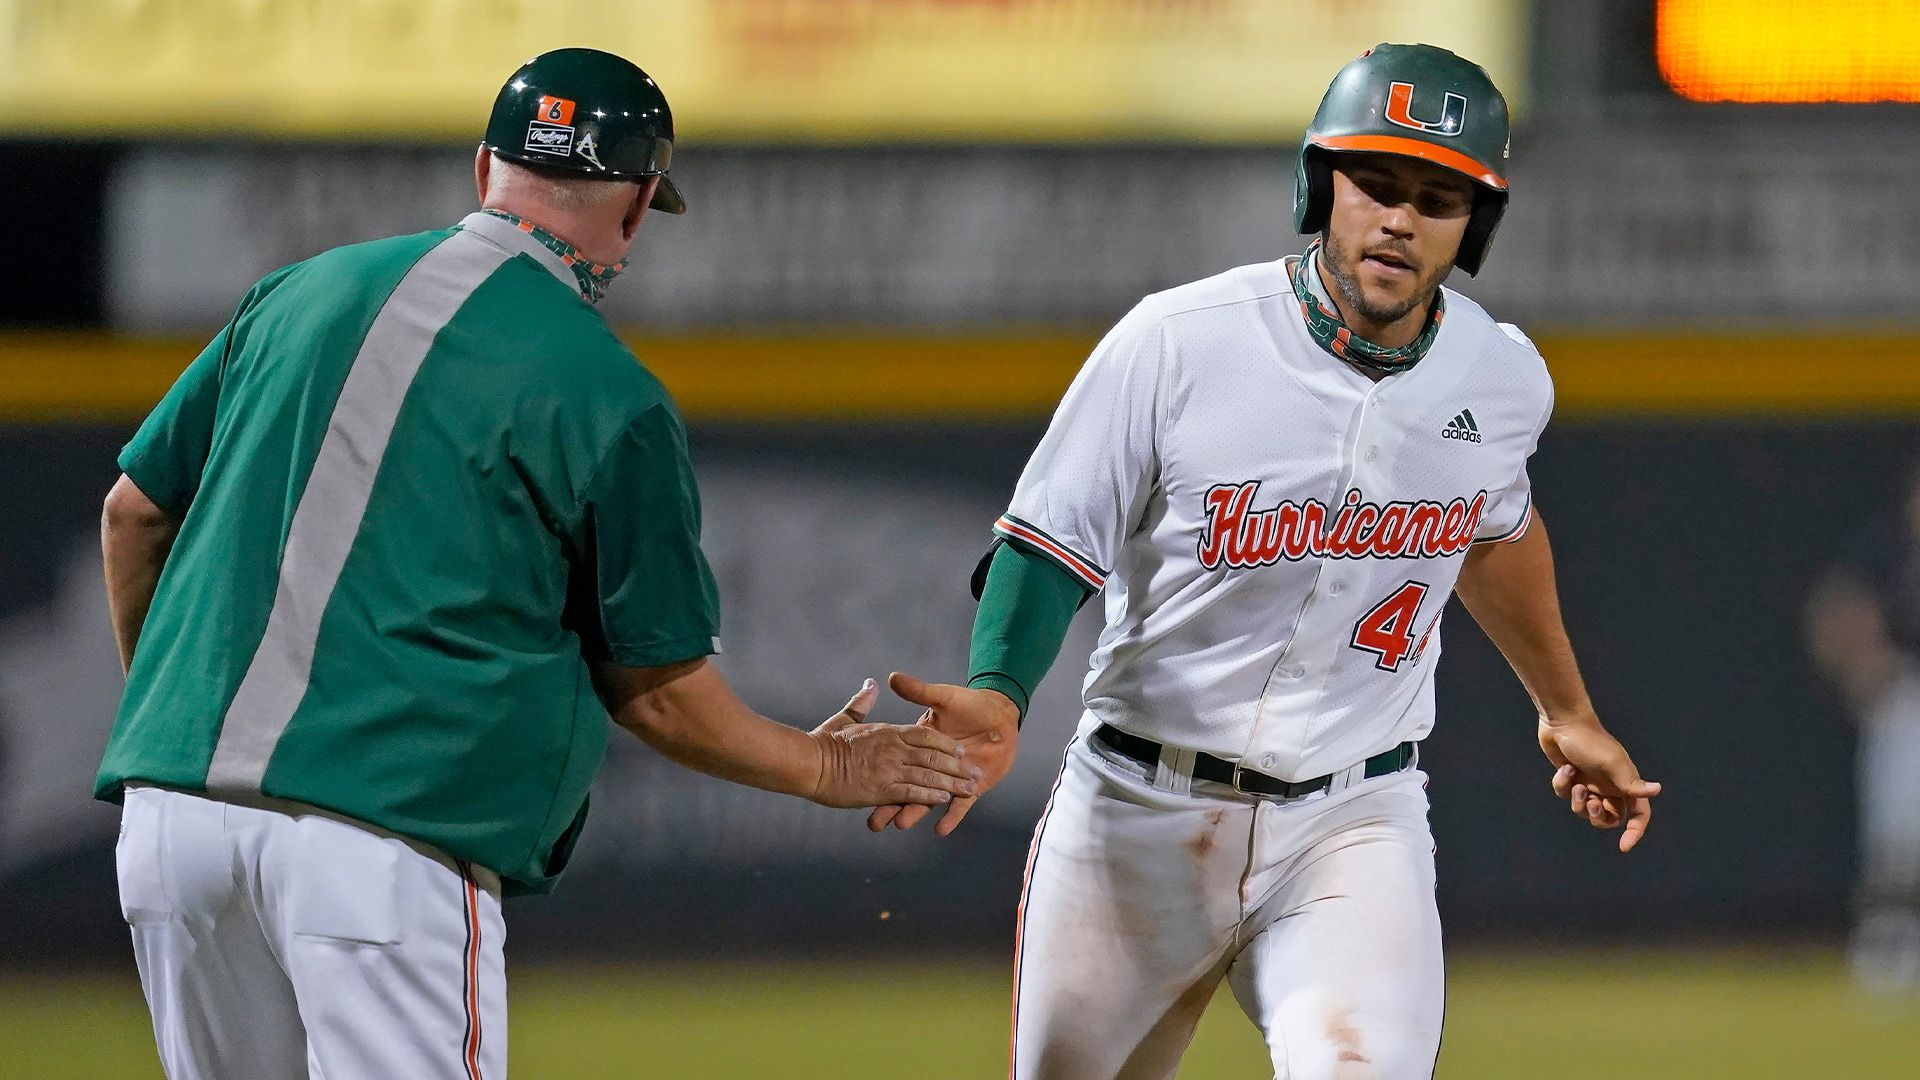 Del Castillo Named NCBWA National Player of the Week